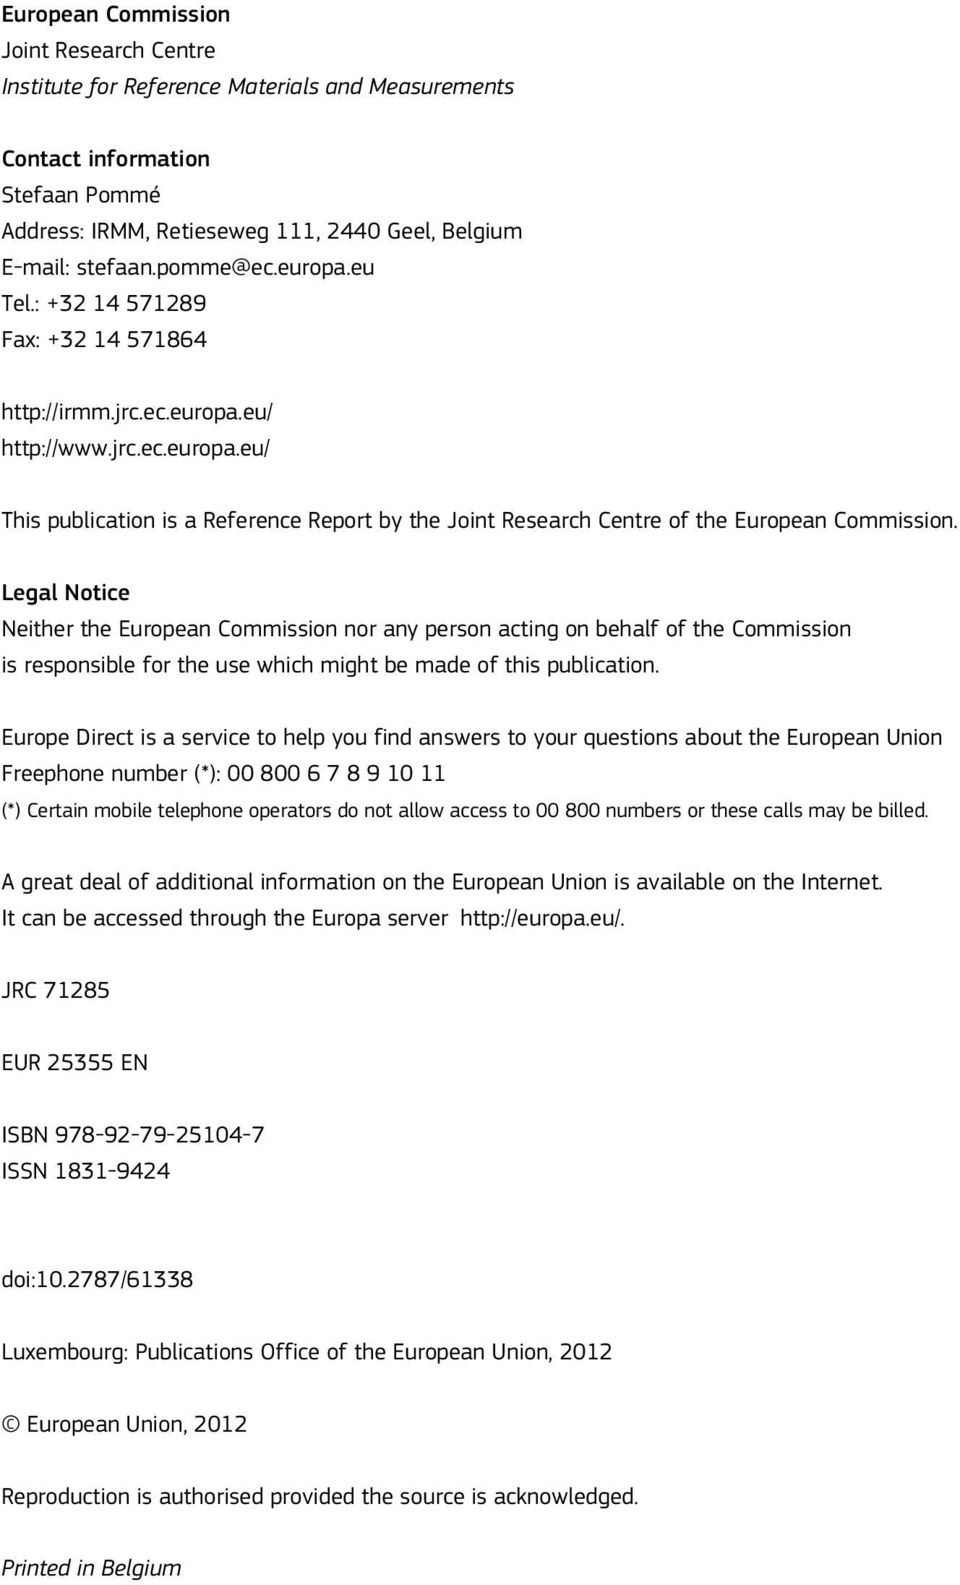 Legal otce ether the European Commsson nor any person actng on behalf of the Commsson s responsble for the use whch mght be made of ths publcaton.